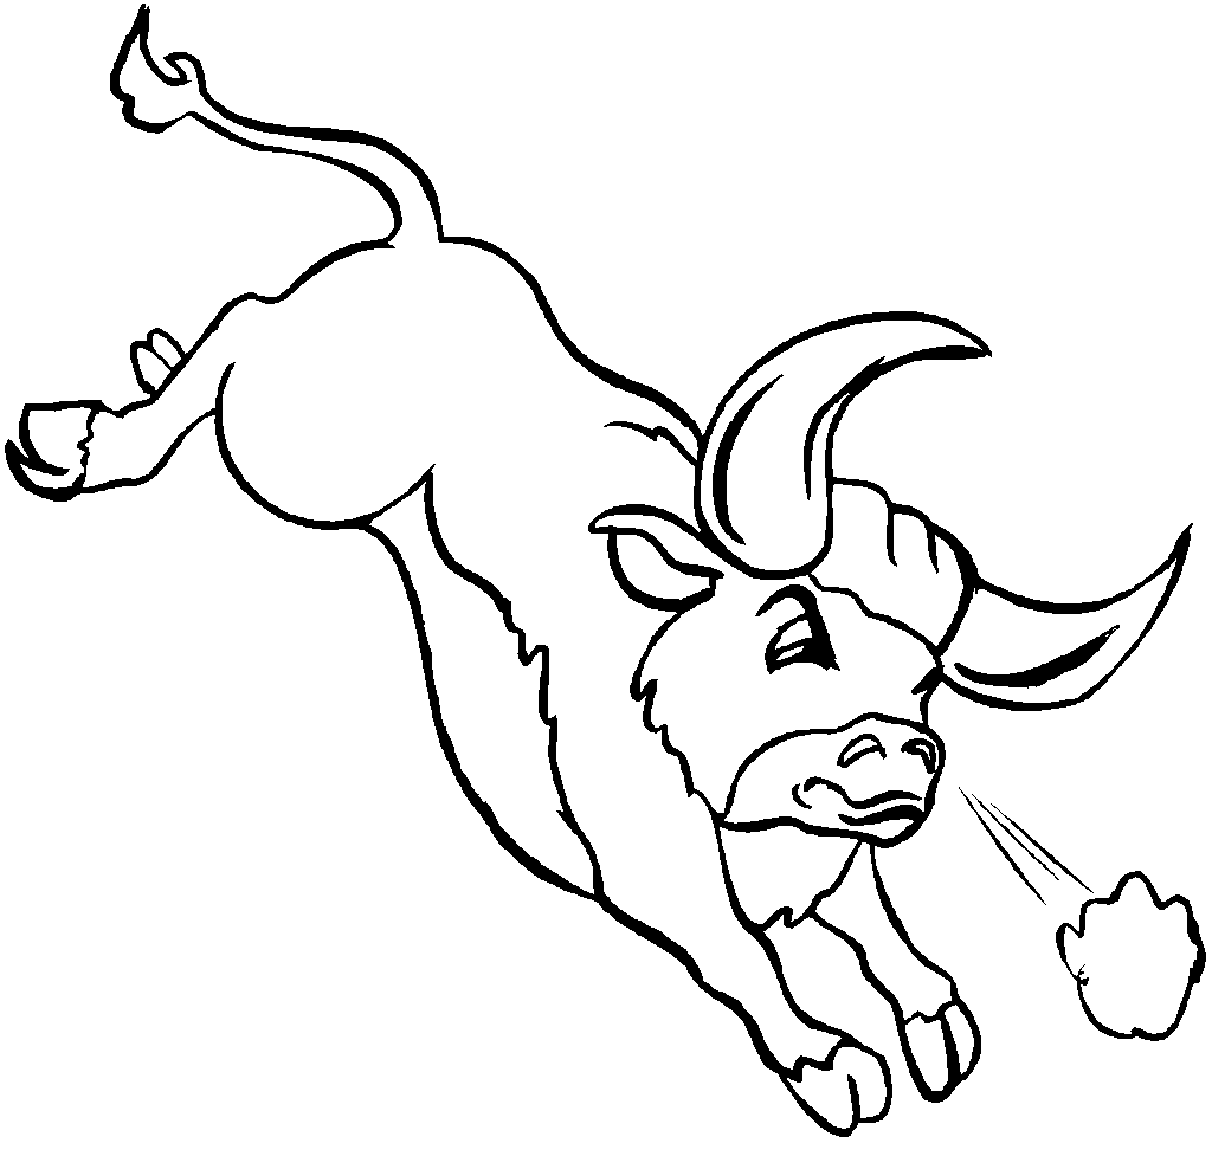 Charging Bull Coloring Page